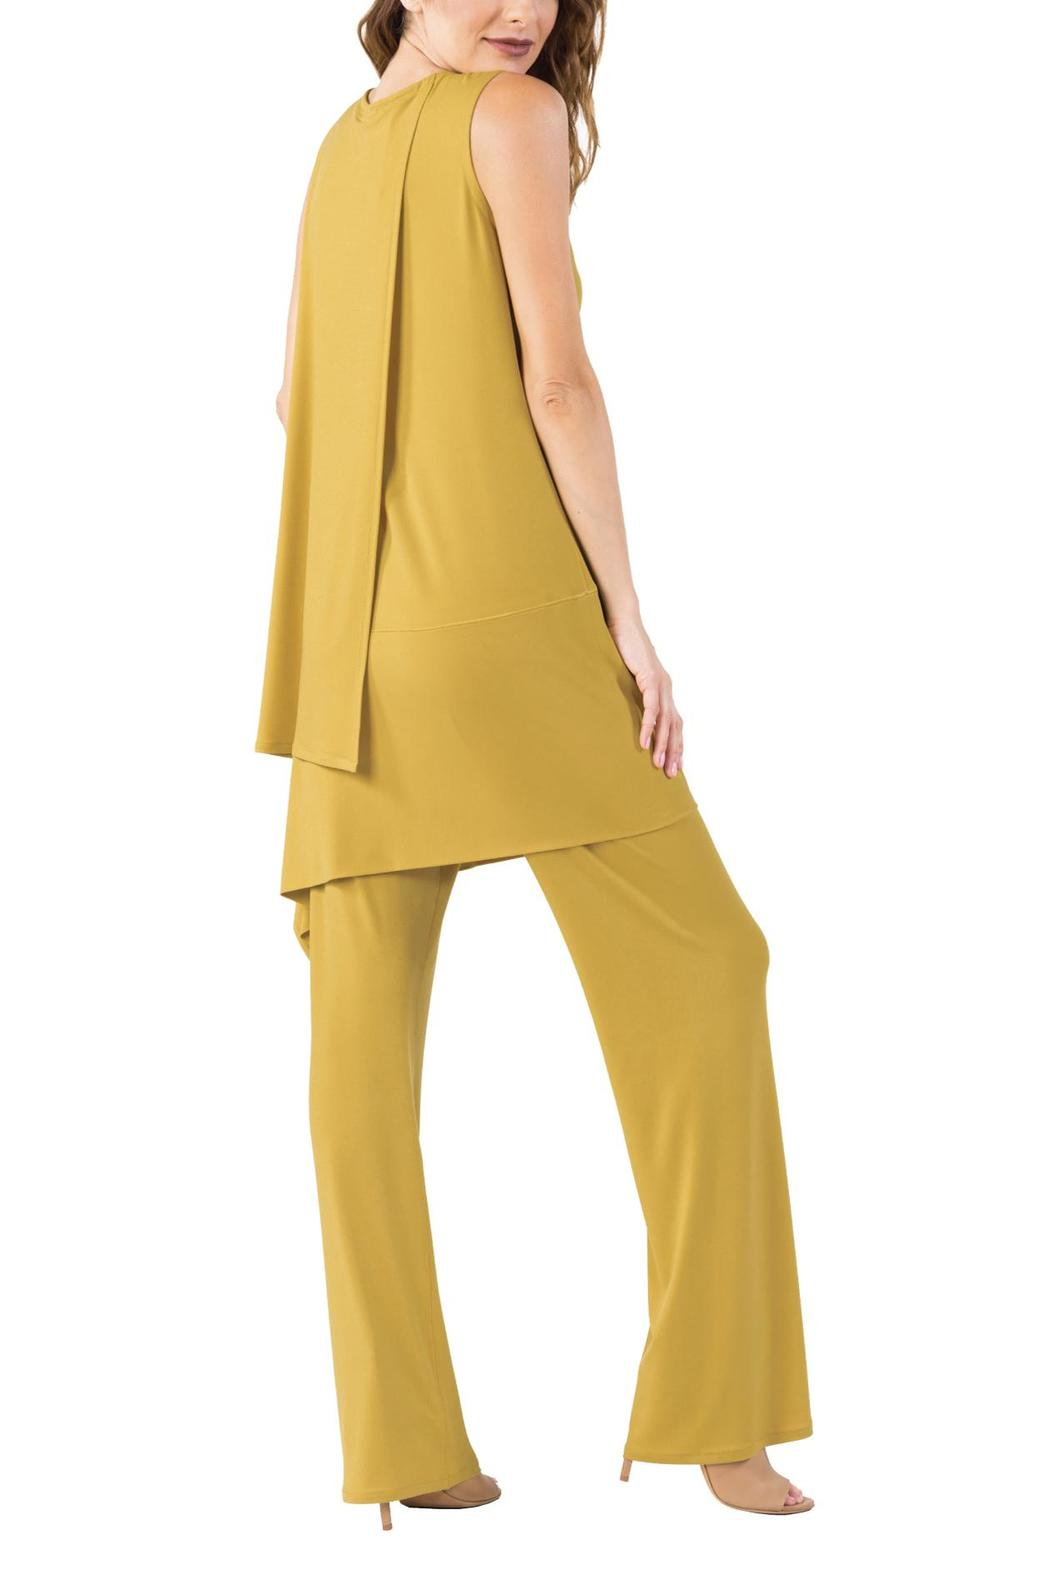 Eva Varro Side Drape Tunic - Side Cropped Image